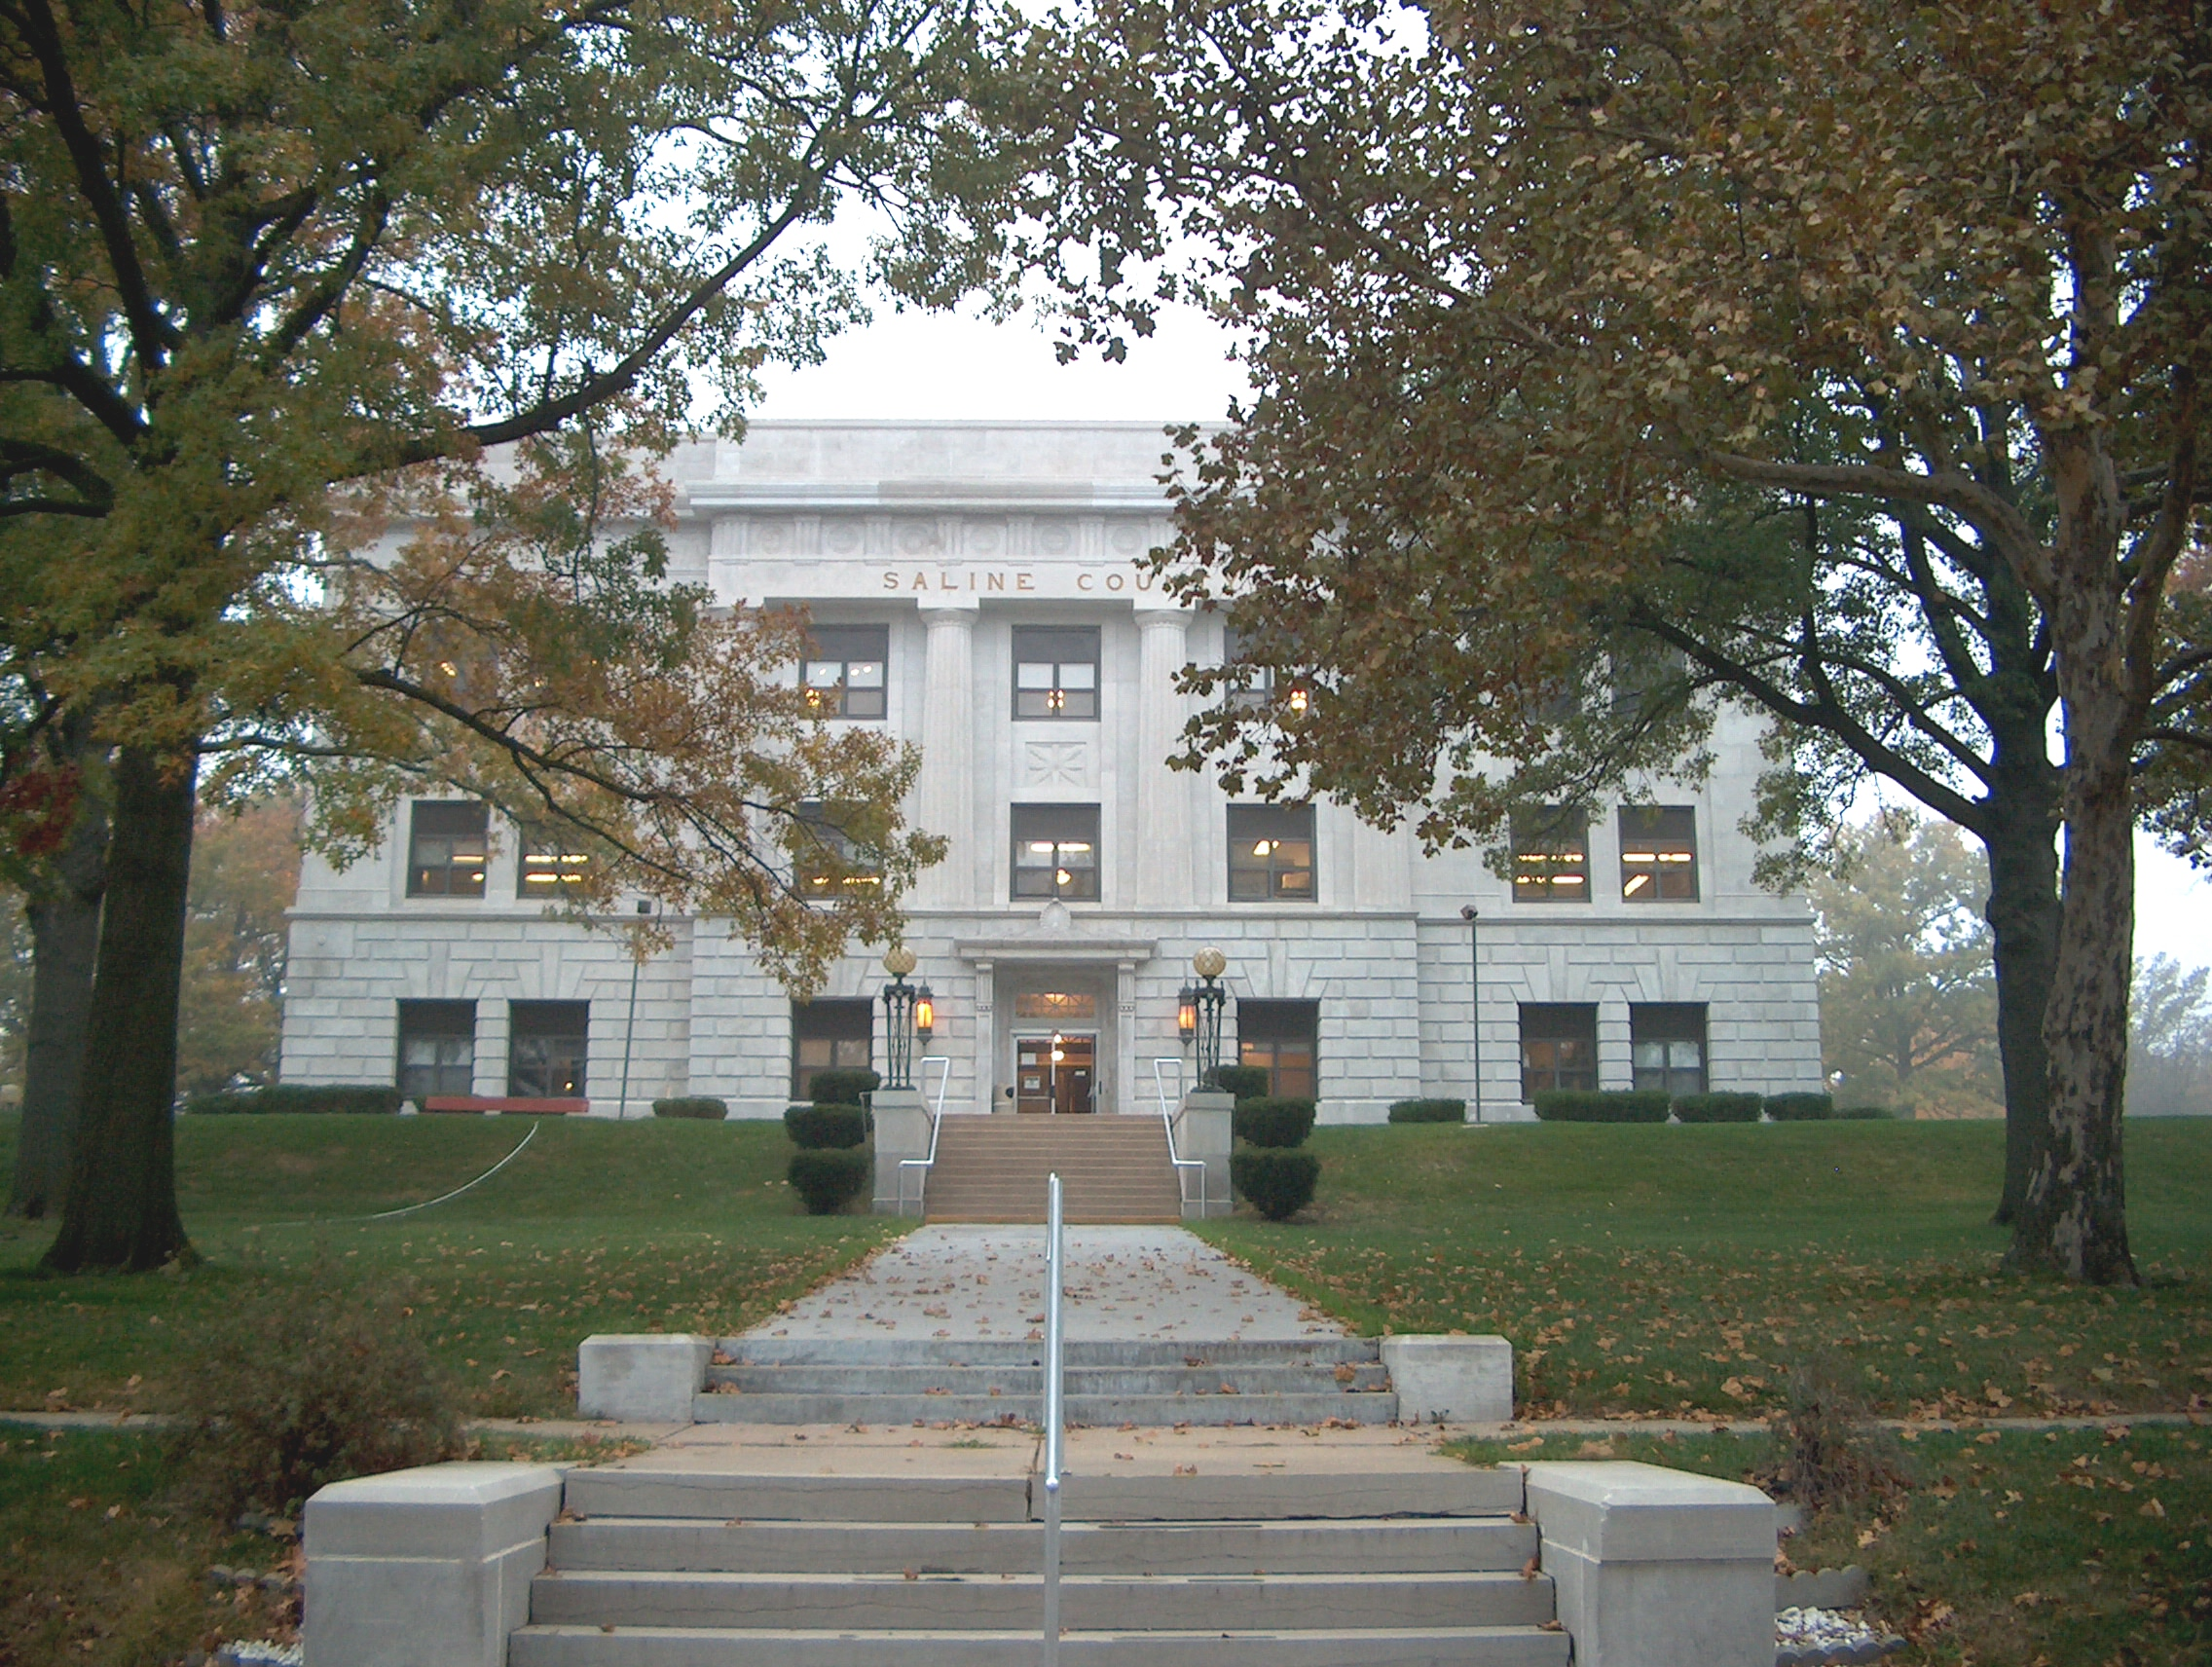 Saline County Courthouse,